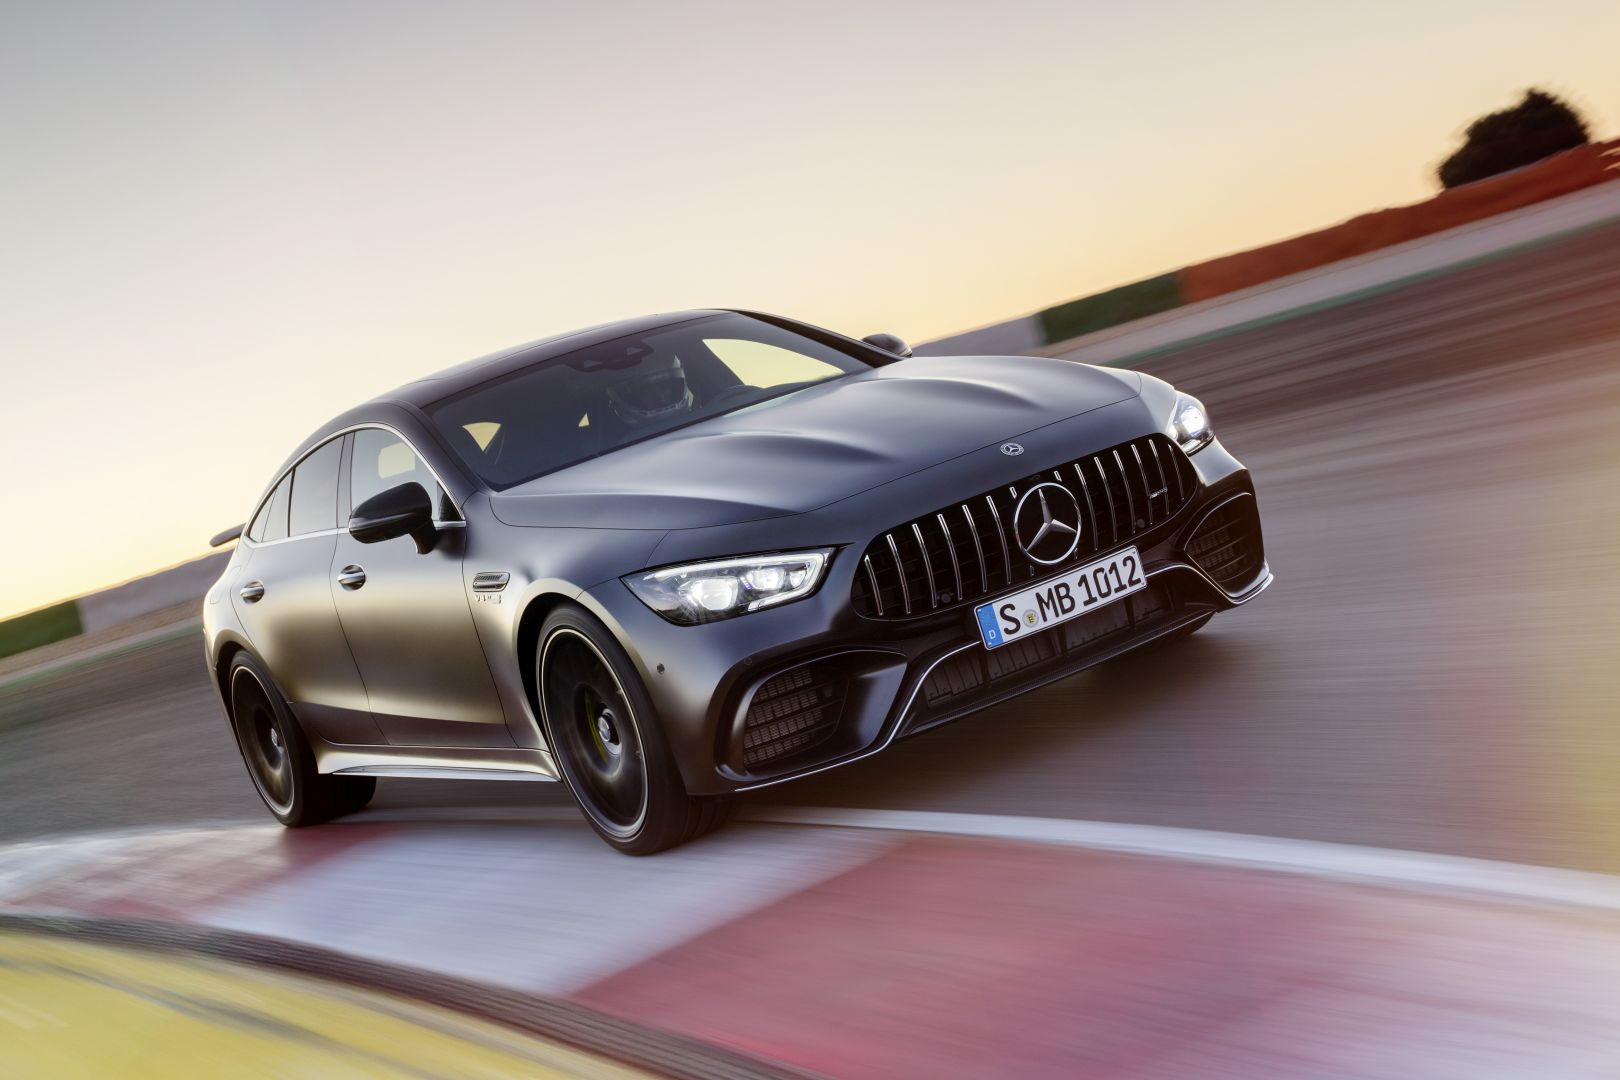 Mercedes amg gt 63 4matic x290 specs 2018 autoevolution for Mercedes benz amg gt coupe price